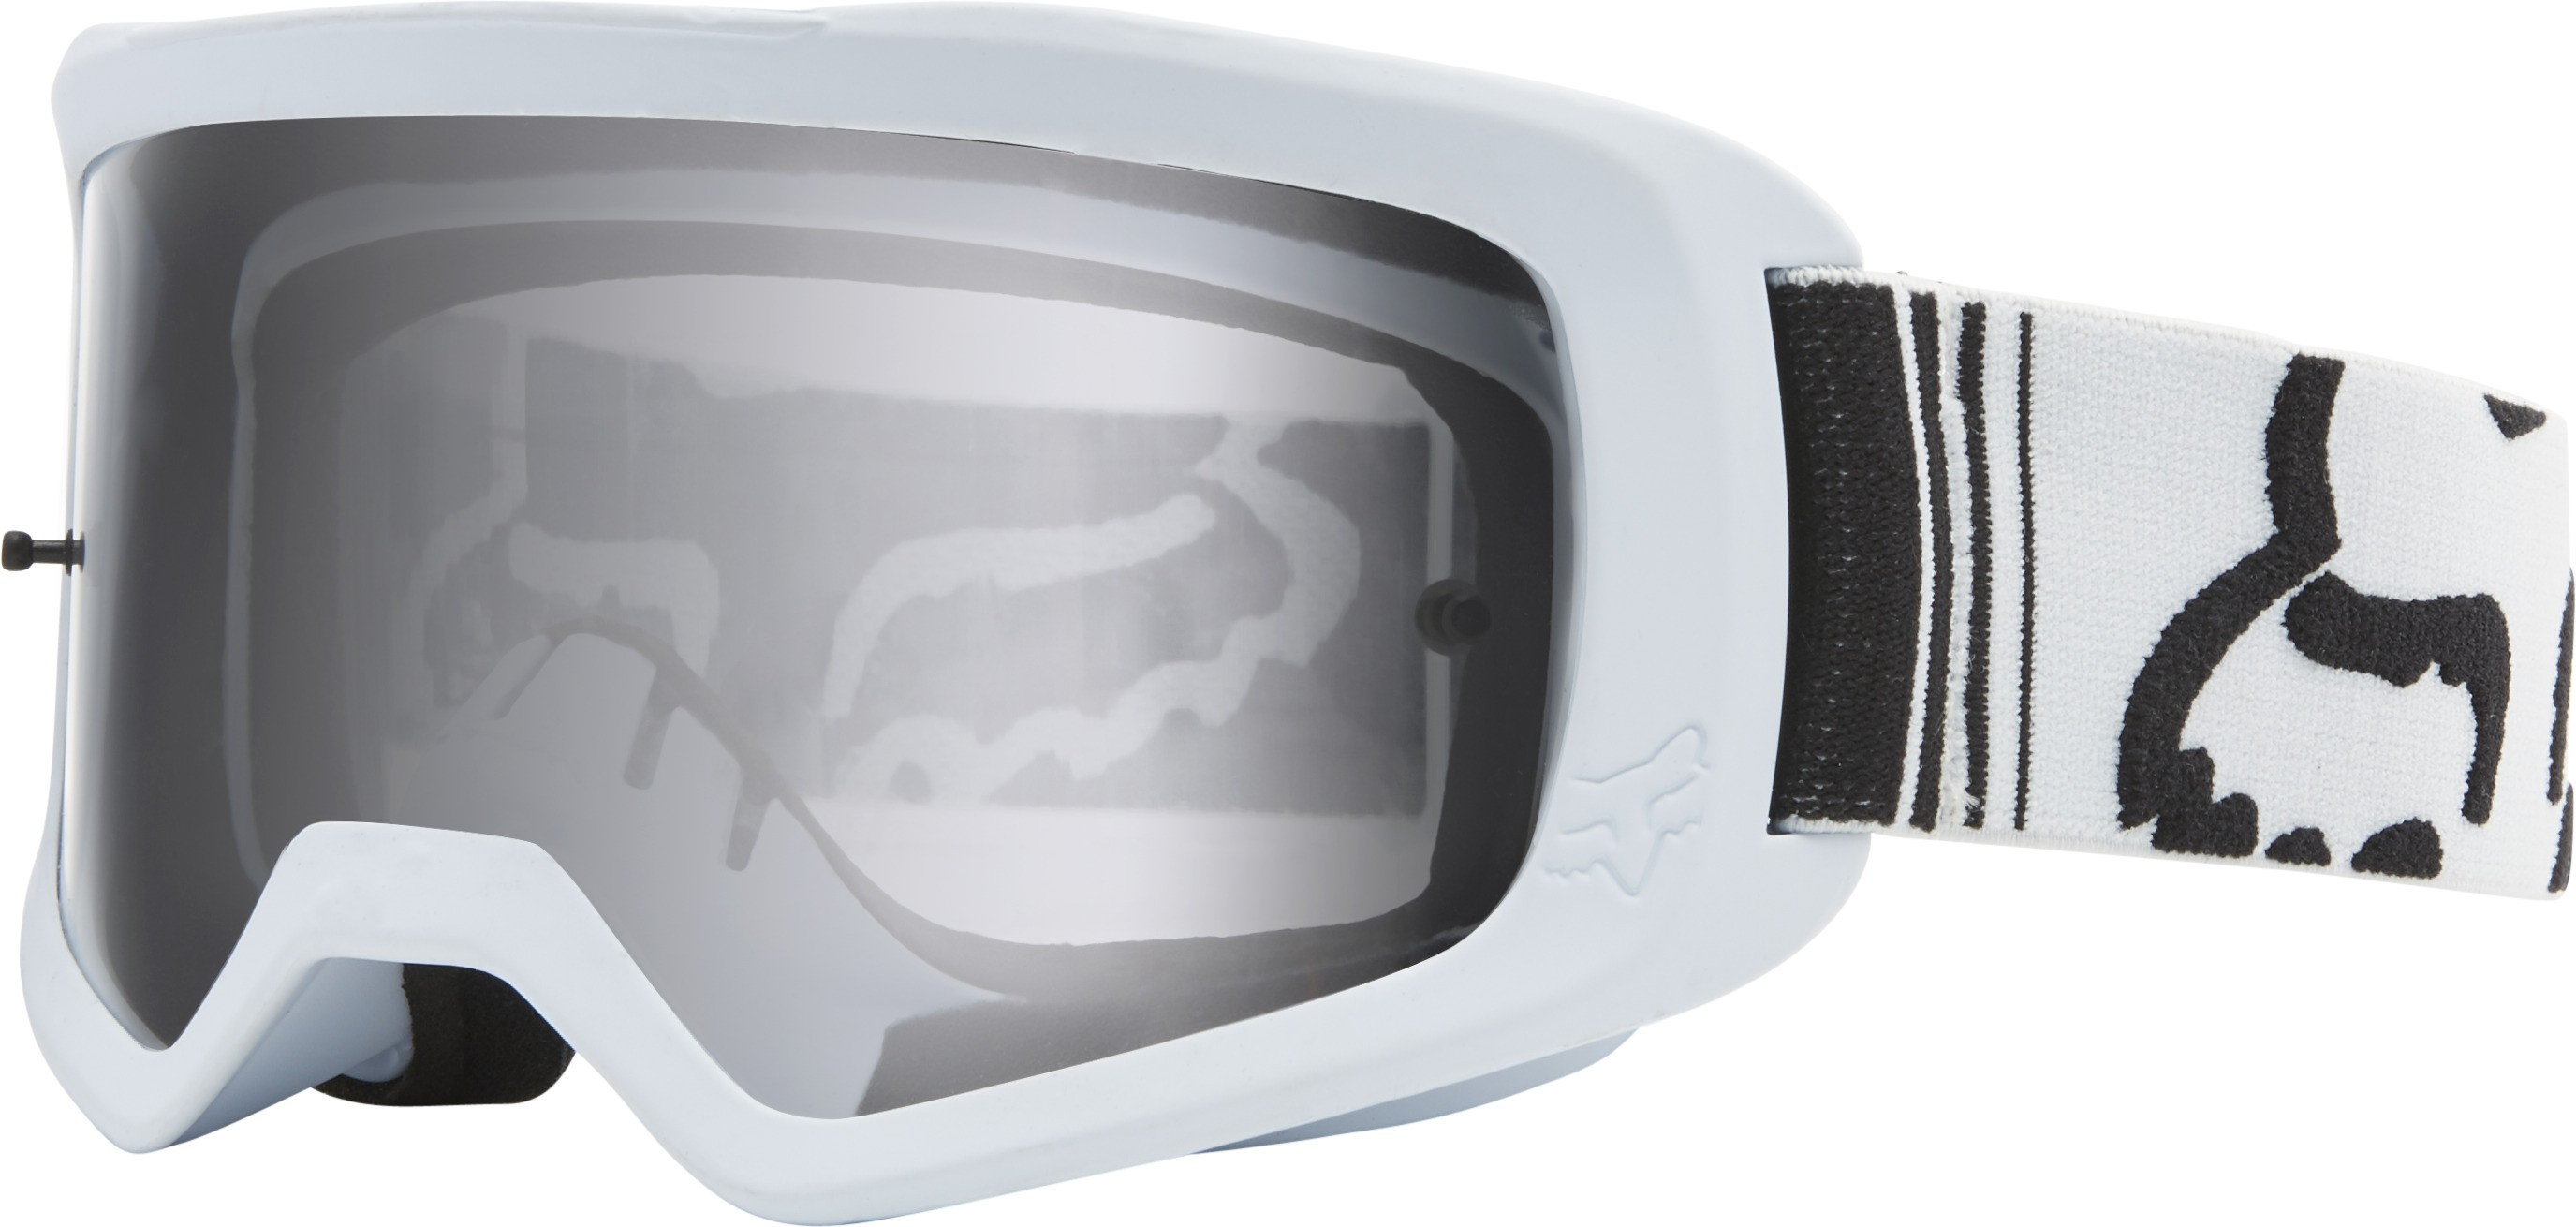 FOX Main II Race Motocross Goggles ΜΑΣΚΑ ΛΕΥΚΗ